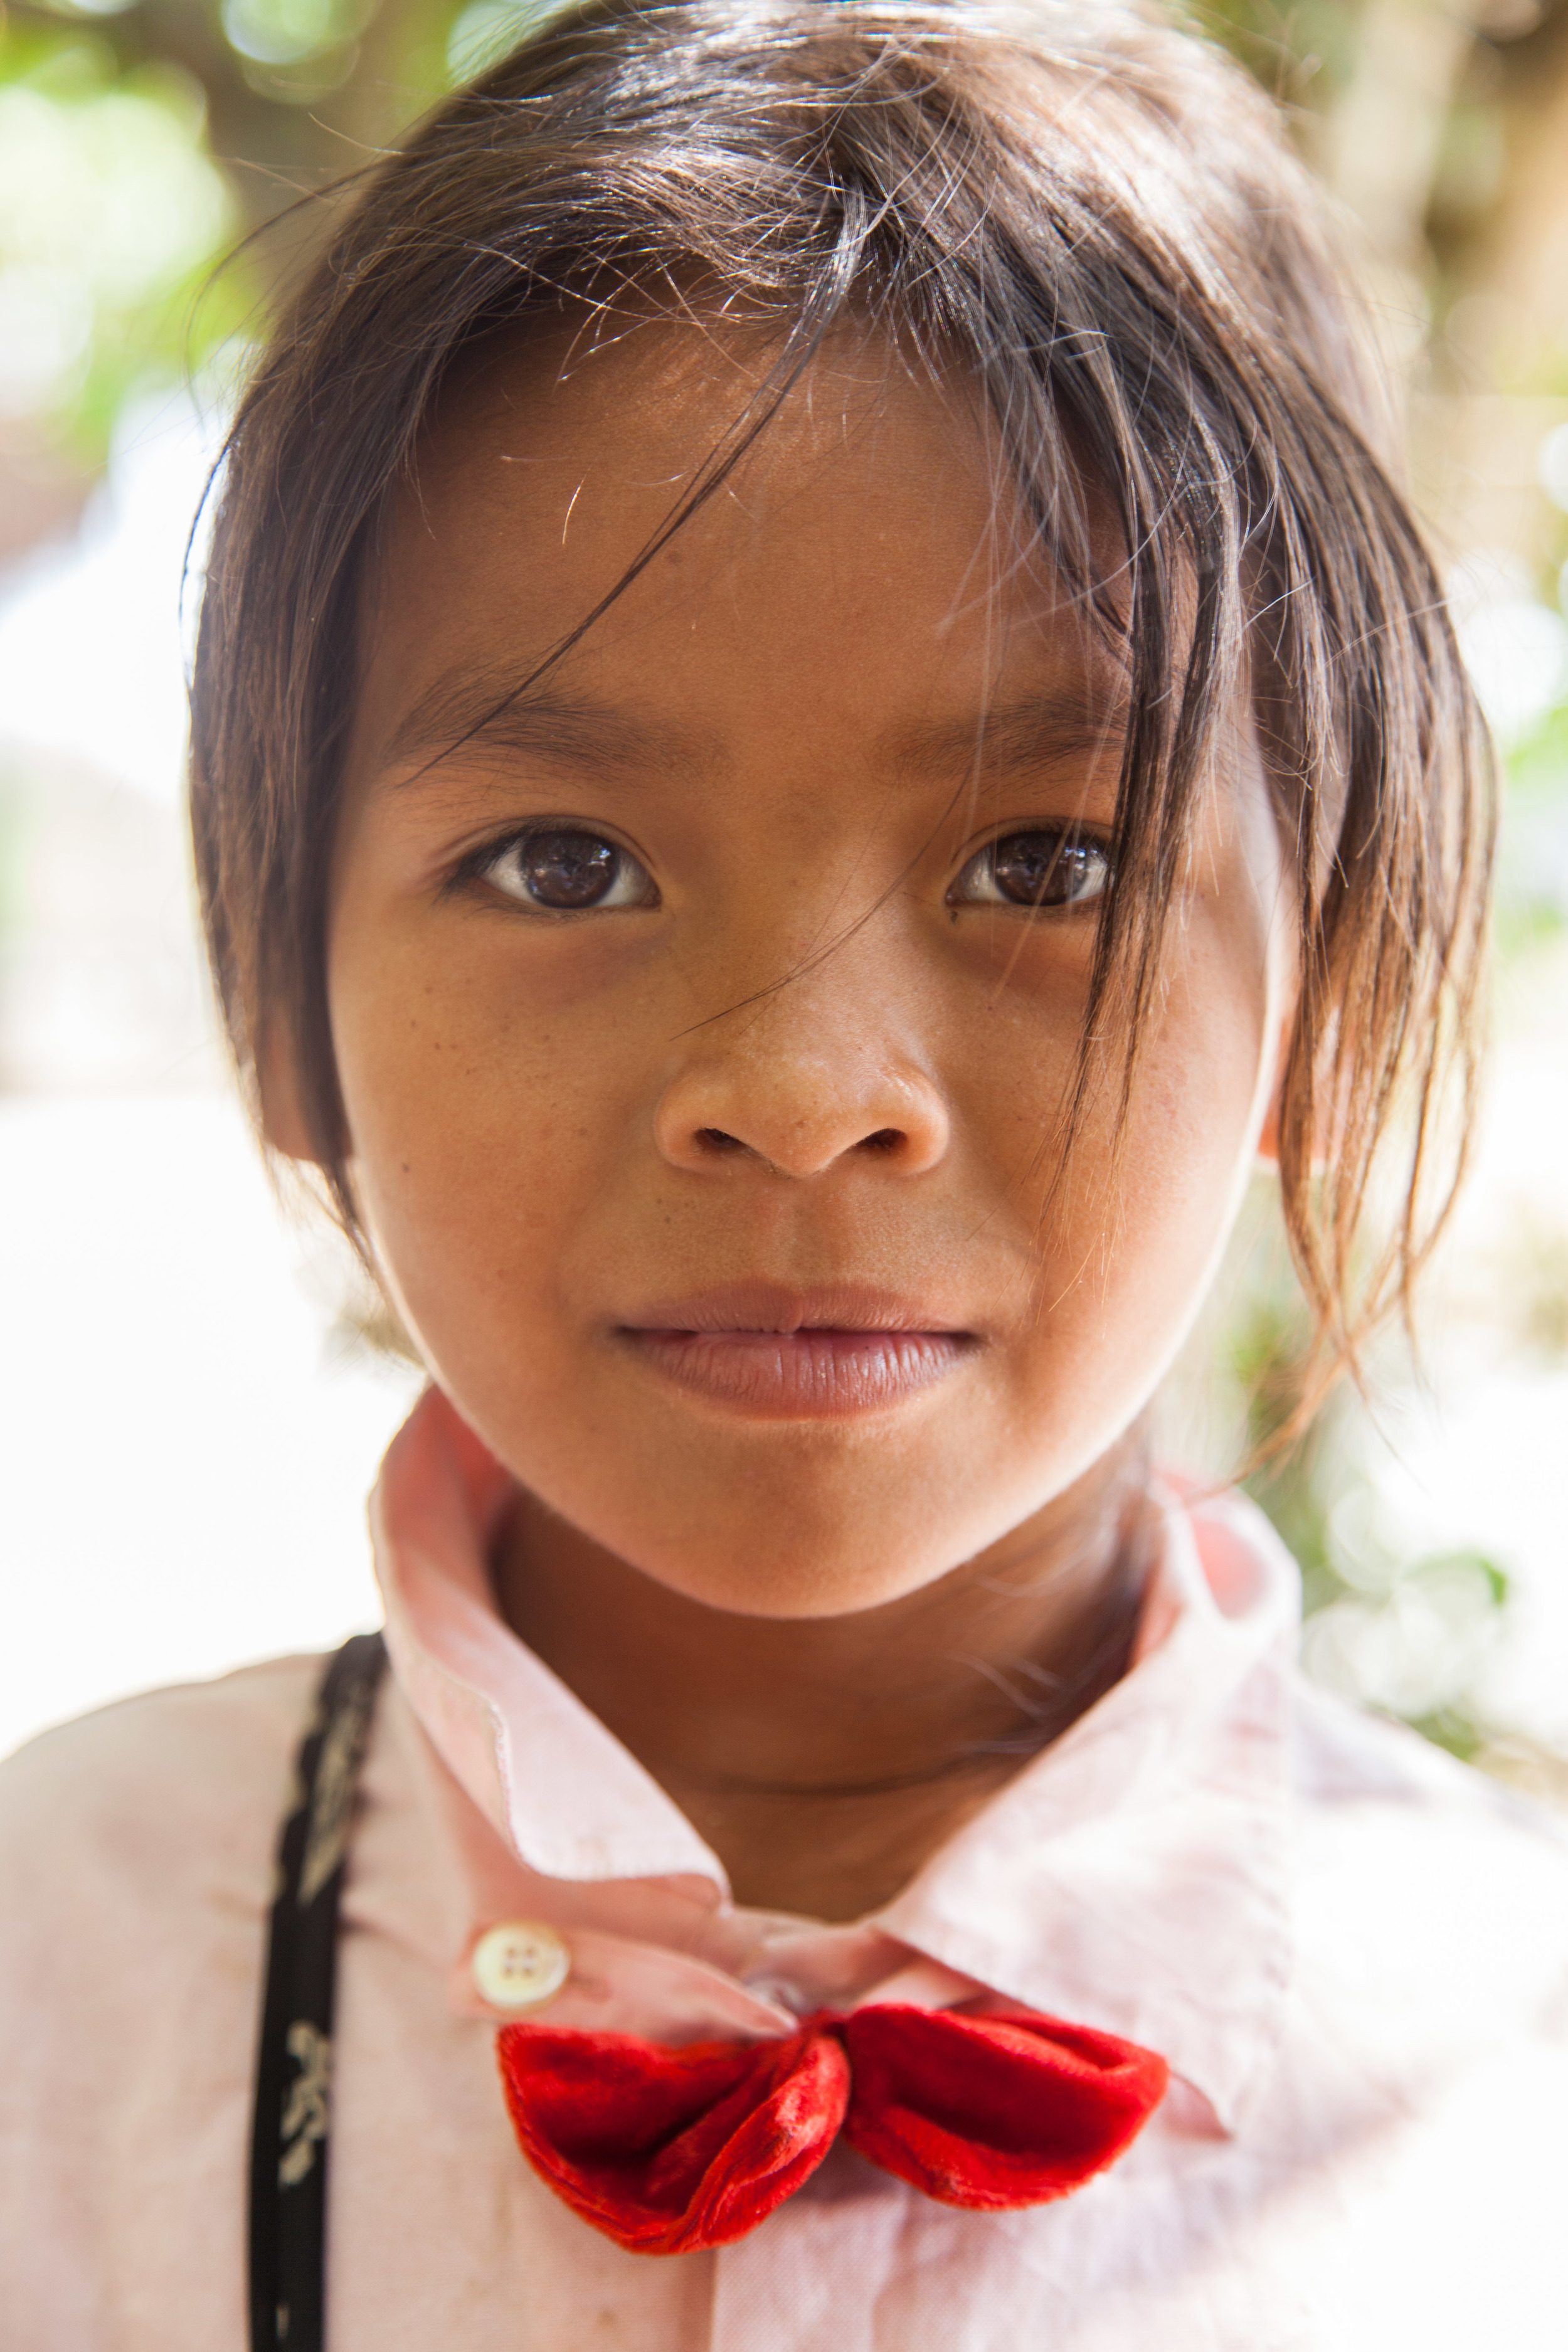 A young cambodian girl